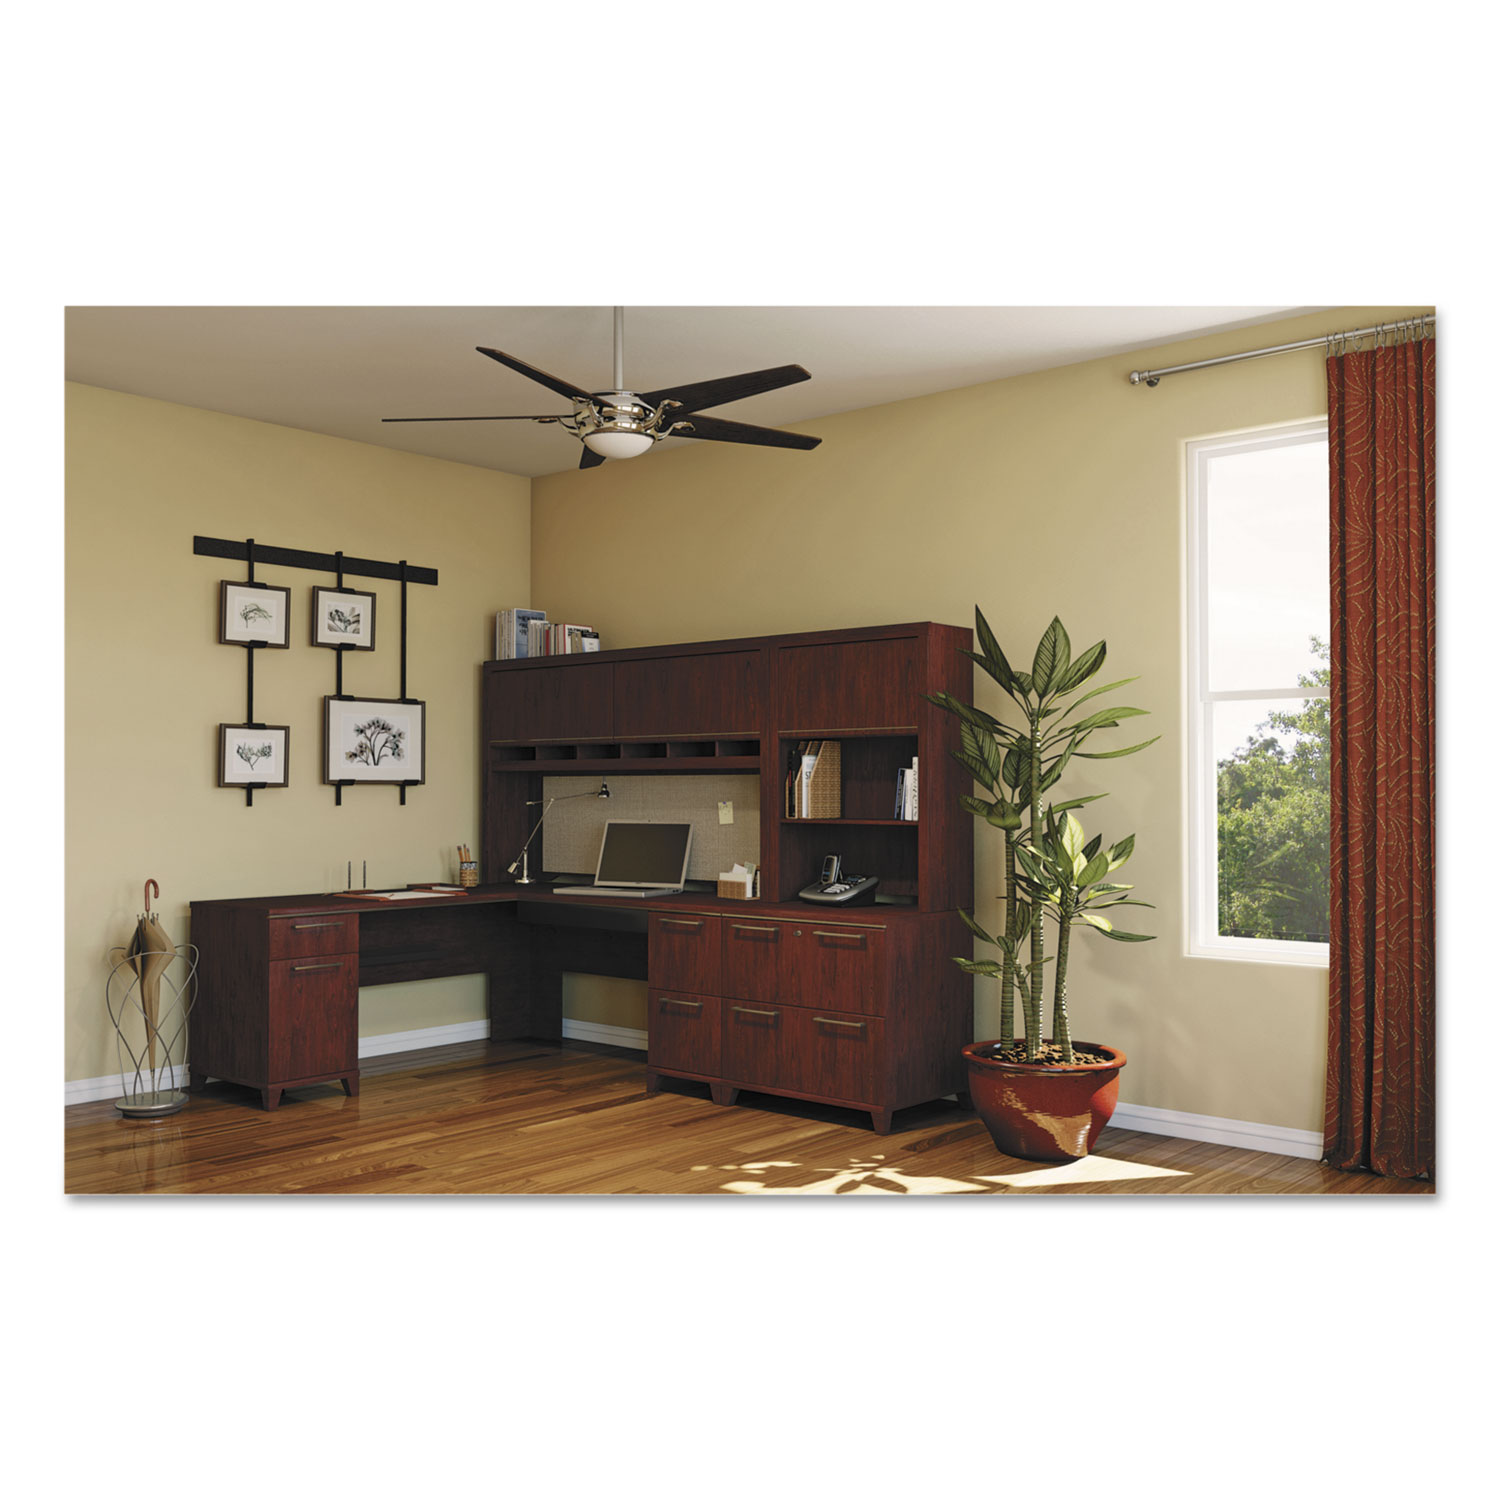 Enterprise Collection 72W x 72D L-Desk, Harvest Cherry (Box 2 of 2)